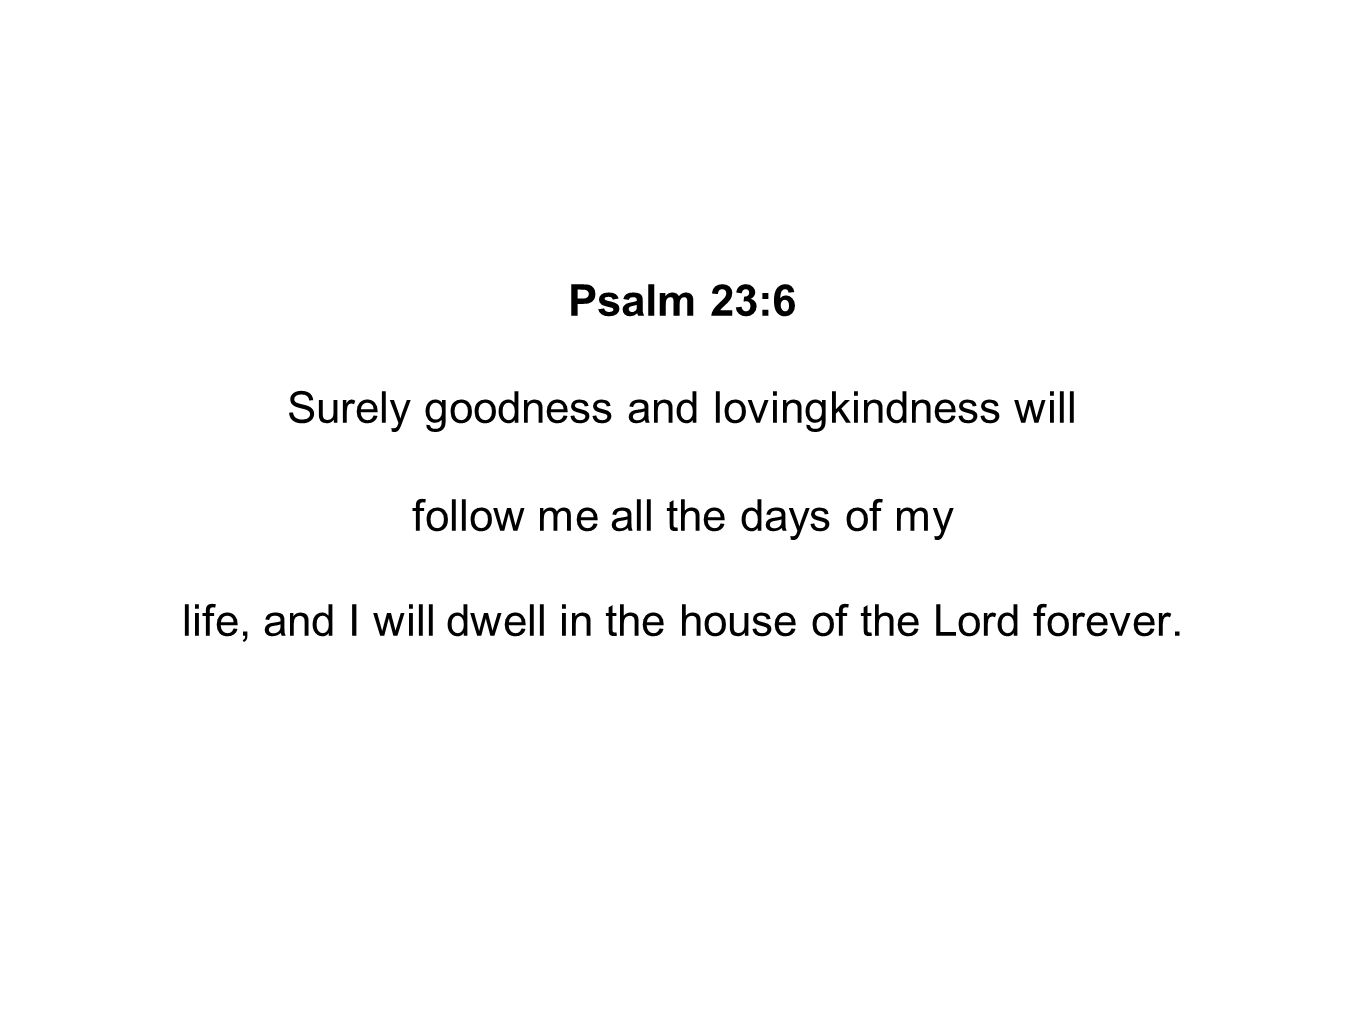 Psalm 23:6 Surely goodness and lovingkindness will follow me all the days of my life, and I will dwell in the house of the Lord forever.